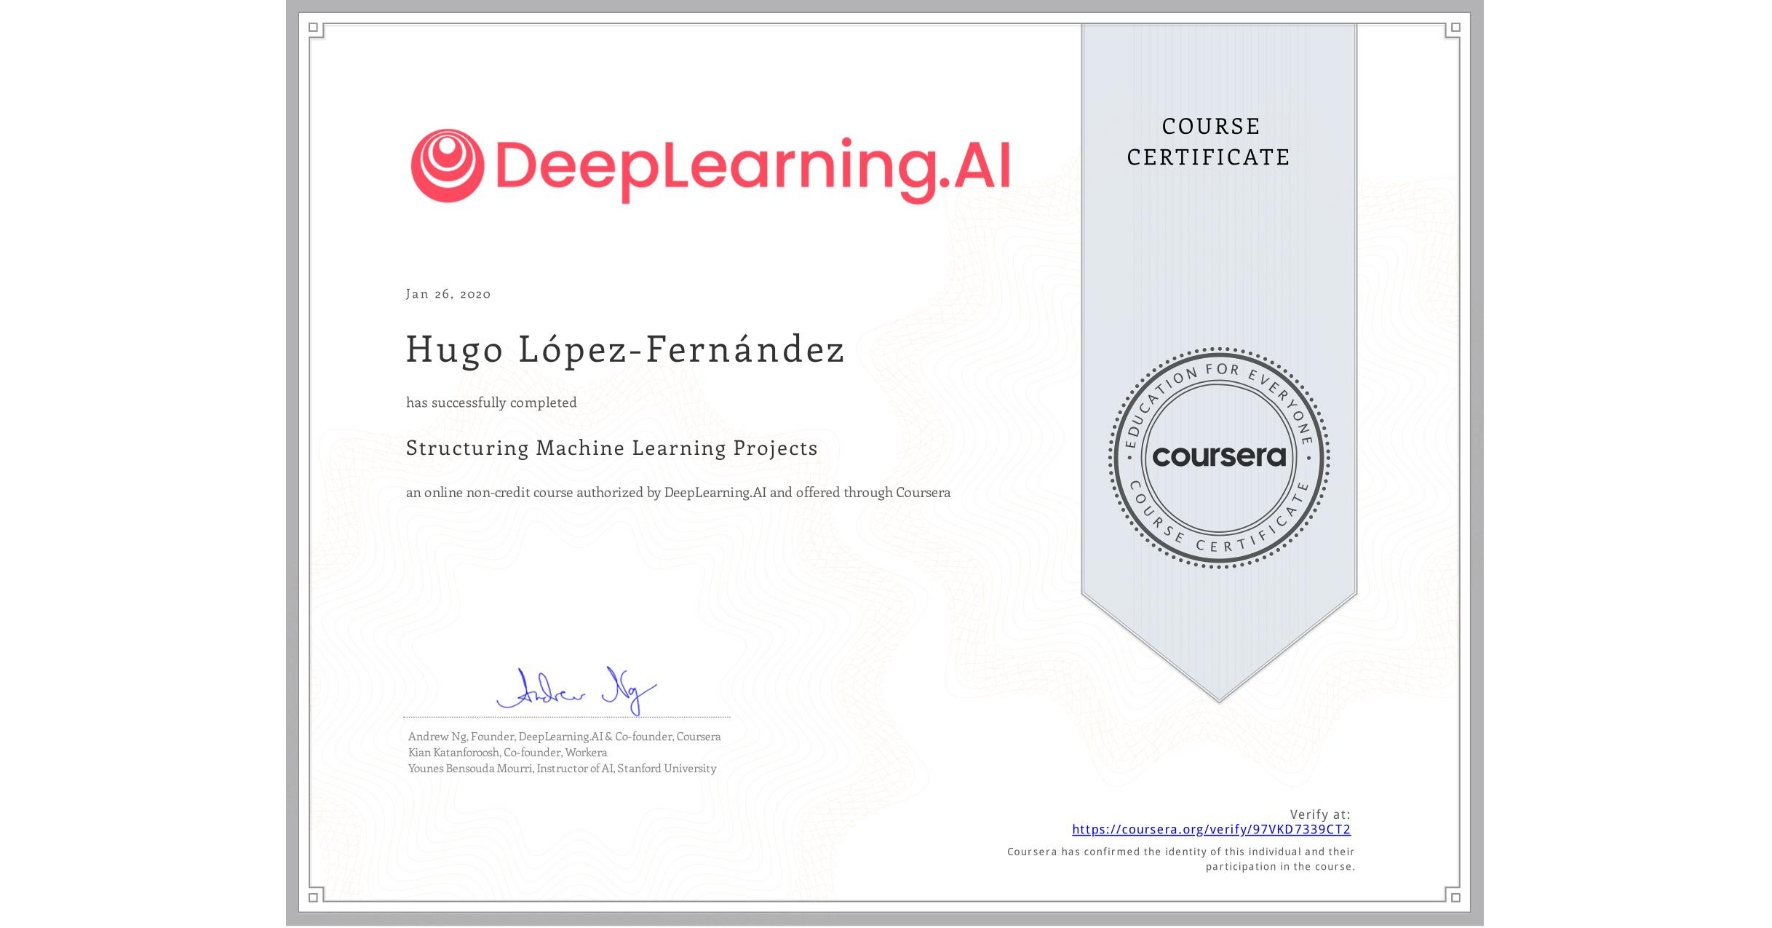 View certificate for Hugo López-Fernández, Structuring Machine Learning Projects, an online non-credit course authorized by DeepLearning.AI and offered through Coursera